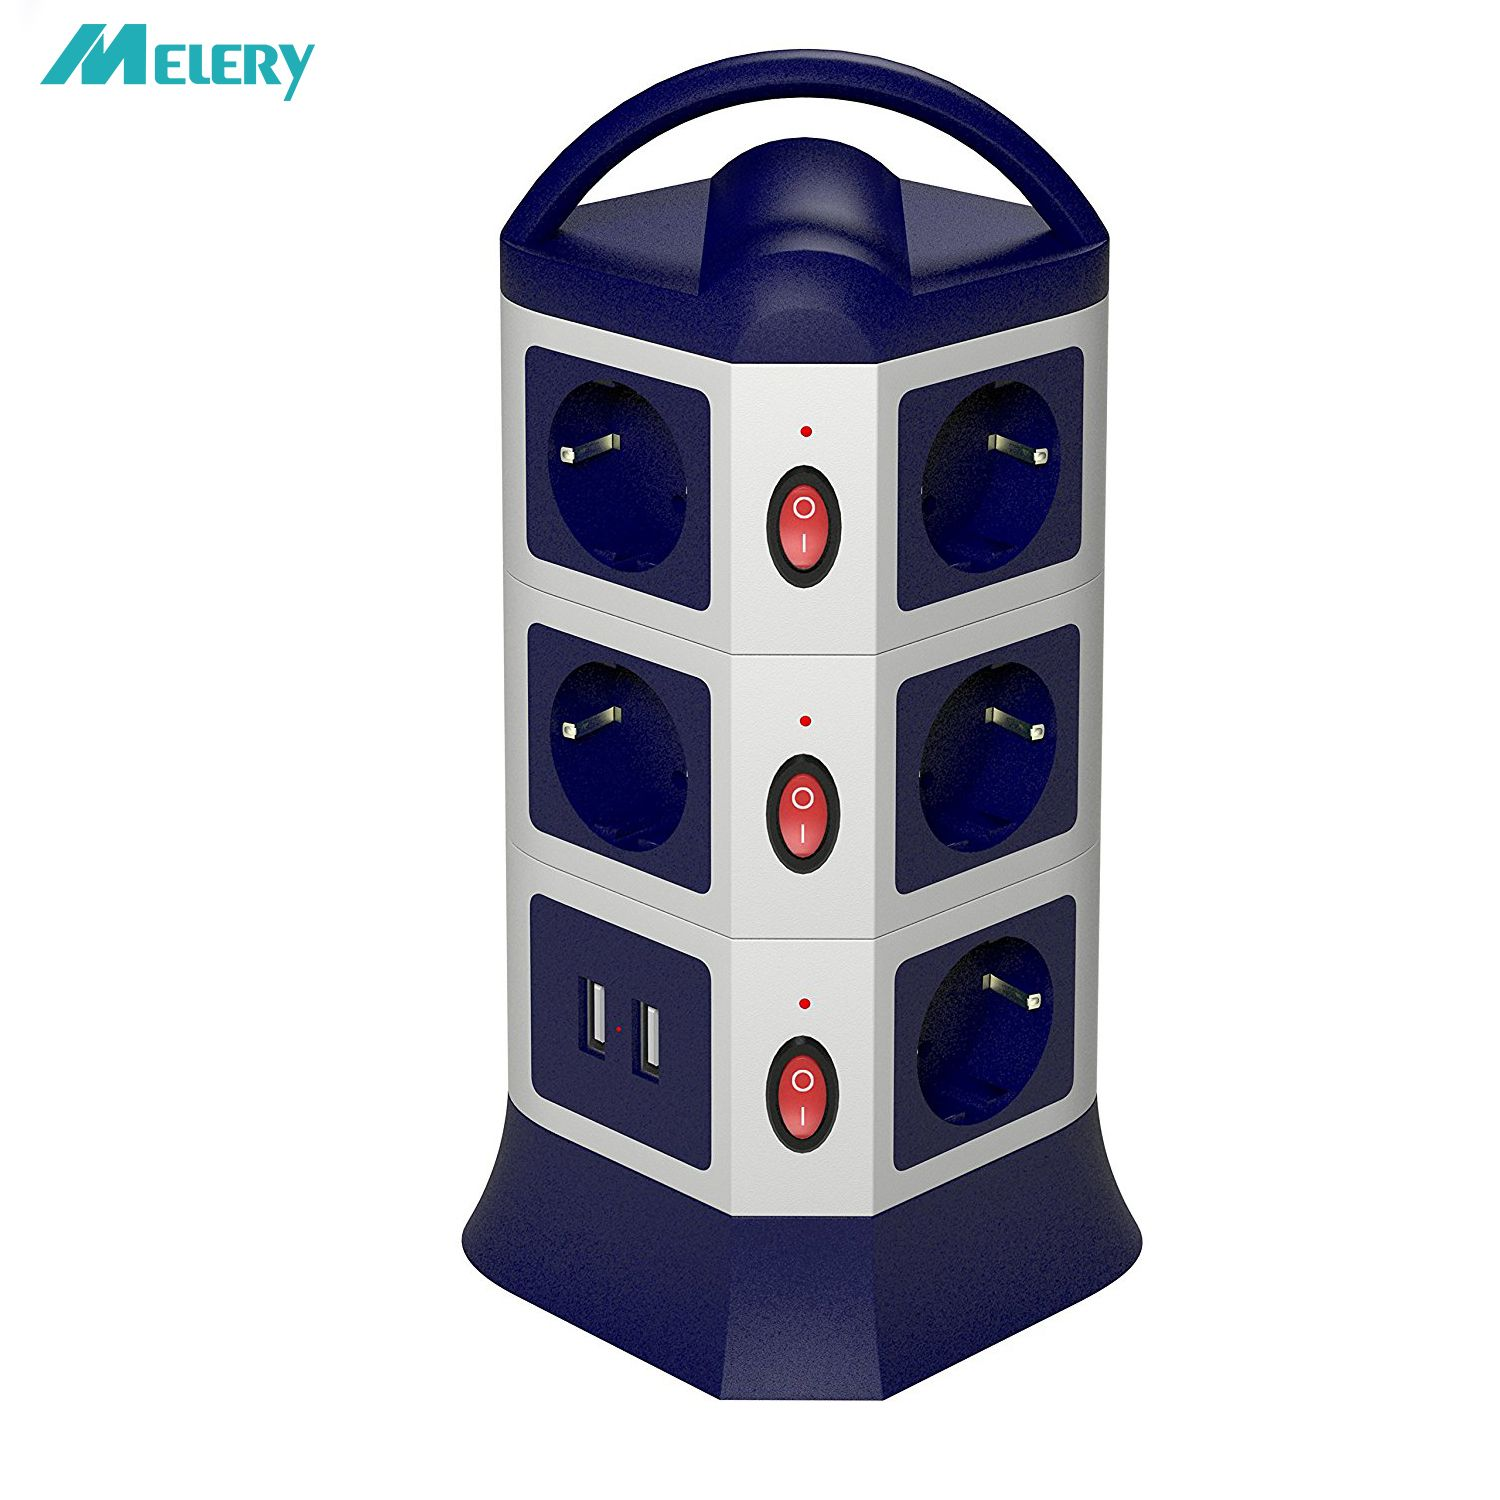 Power Strip USB Outlets 7/11 EU Outlets Socket with USB Surge Protector Individually Switch 1.8m/6ft Retractable Extension Cord